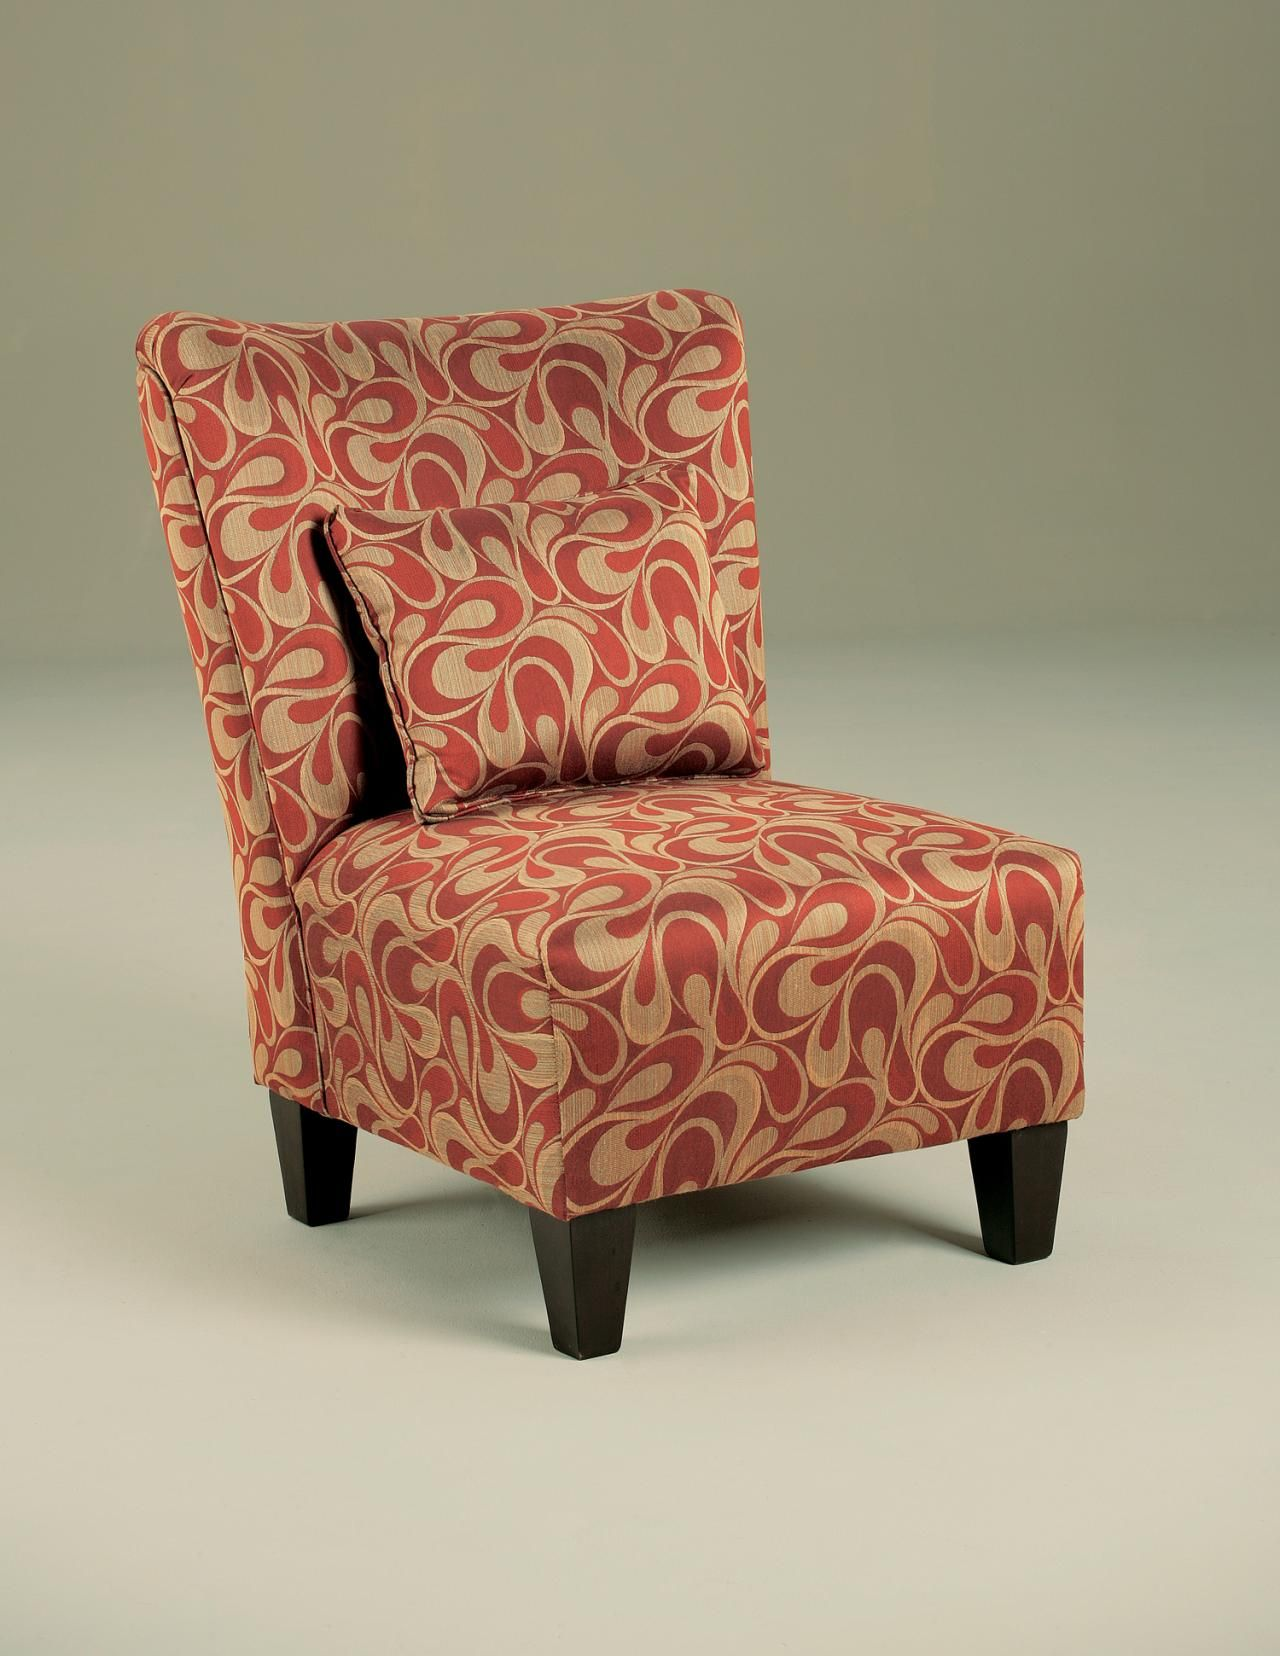 Bedroom Chair Under £100 Rocking In Walmart Furniture Armless Accent With Red And Gold Cover